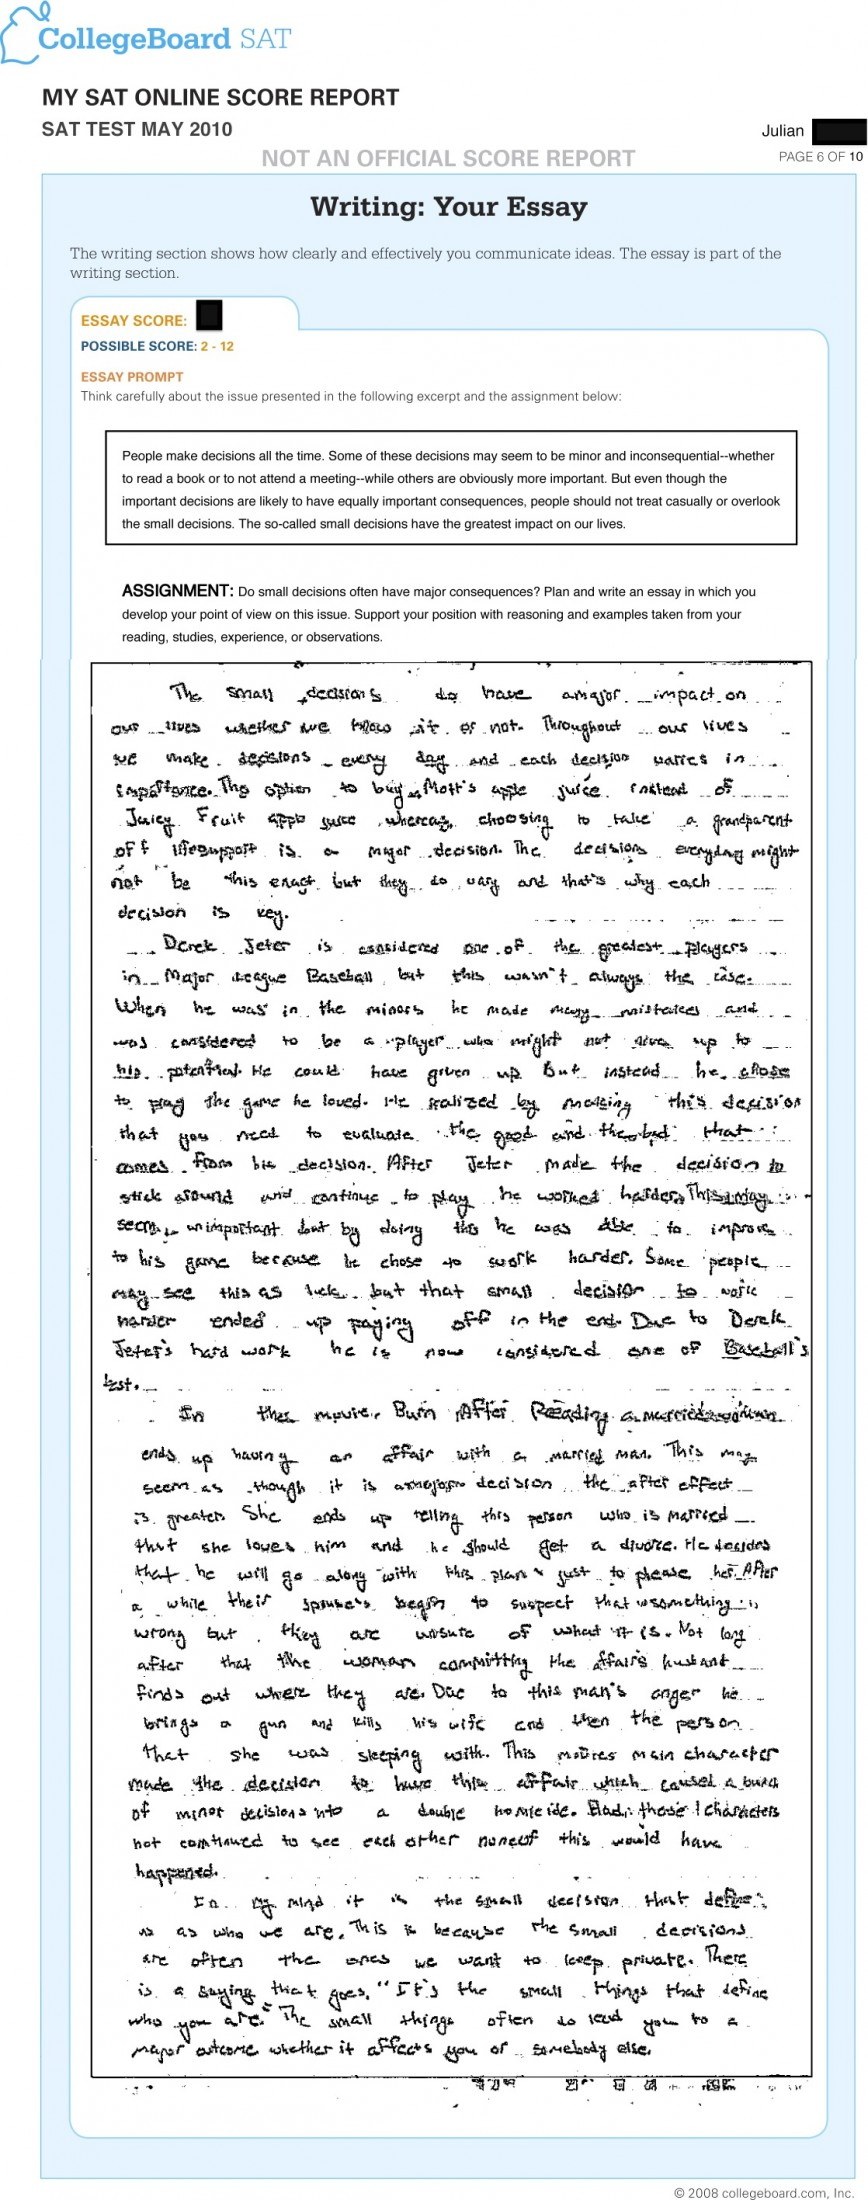 012 Jr May Essay Example What Is Good New Sat Breathtaking A Score For Ucla Reddit Perfect